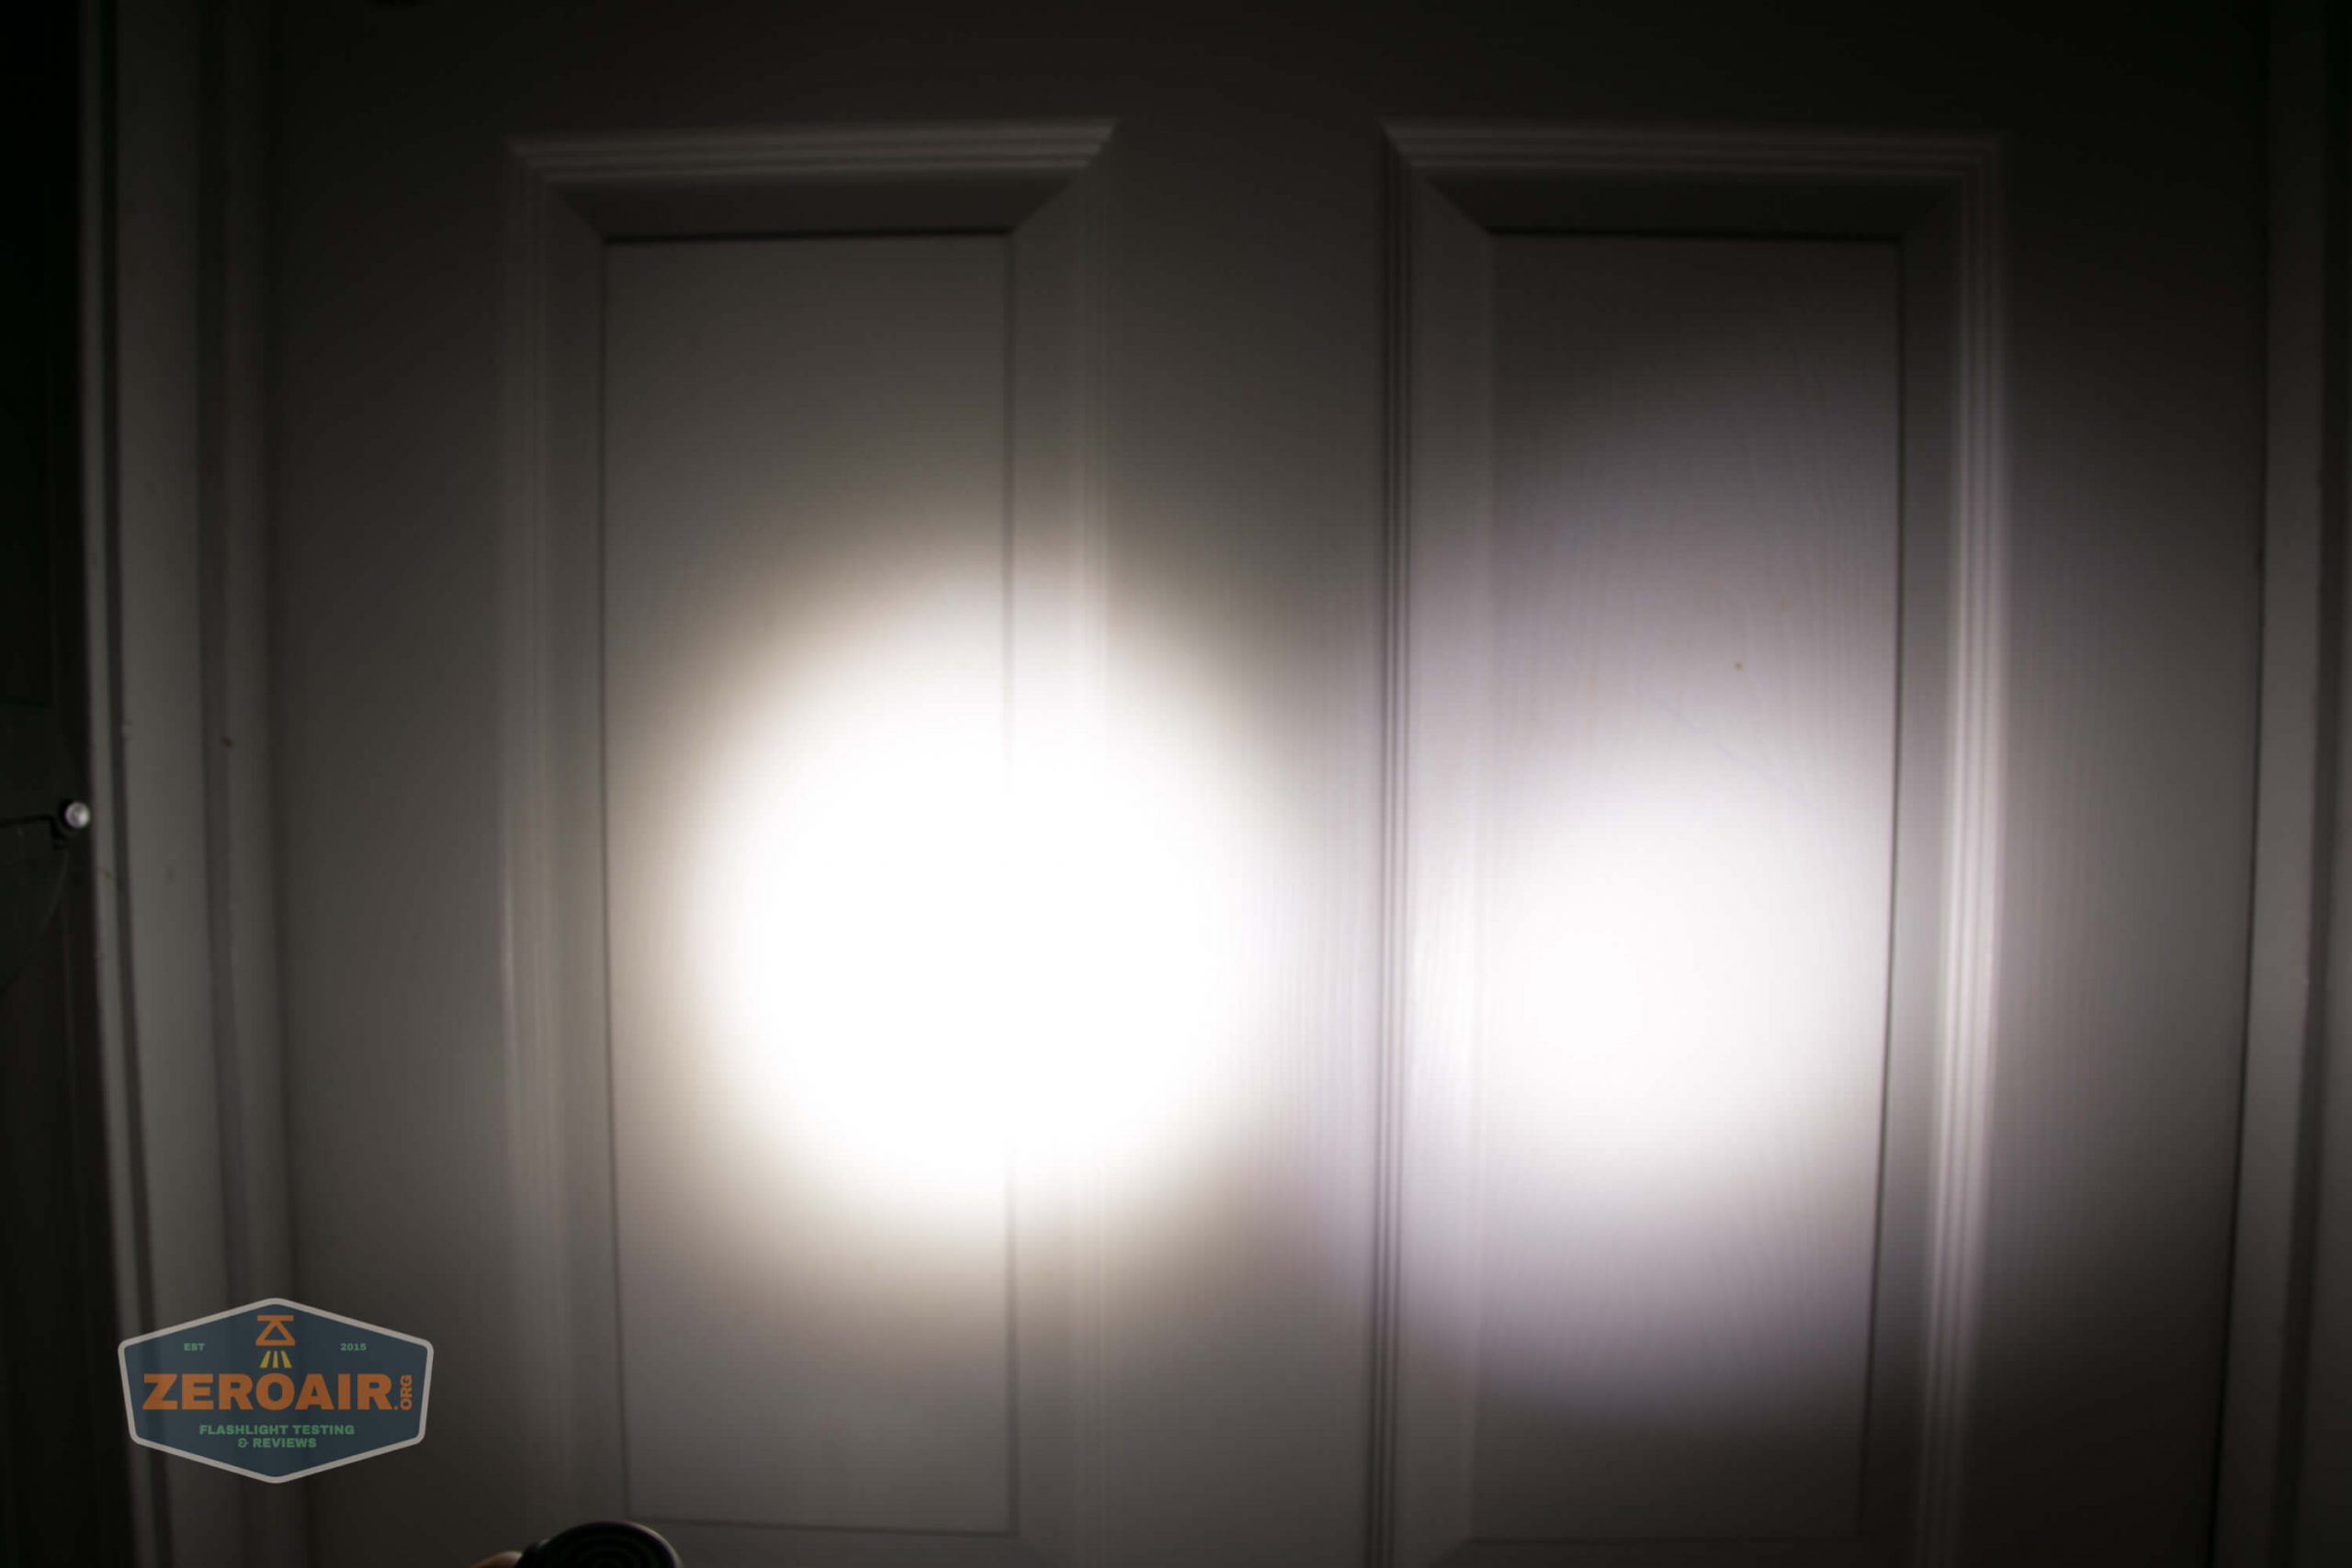 acebeam h17 nichia 18350 beamshot door medium1